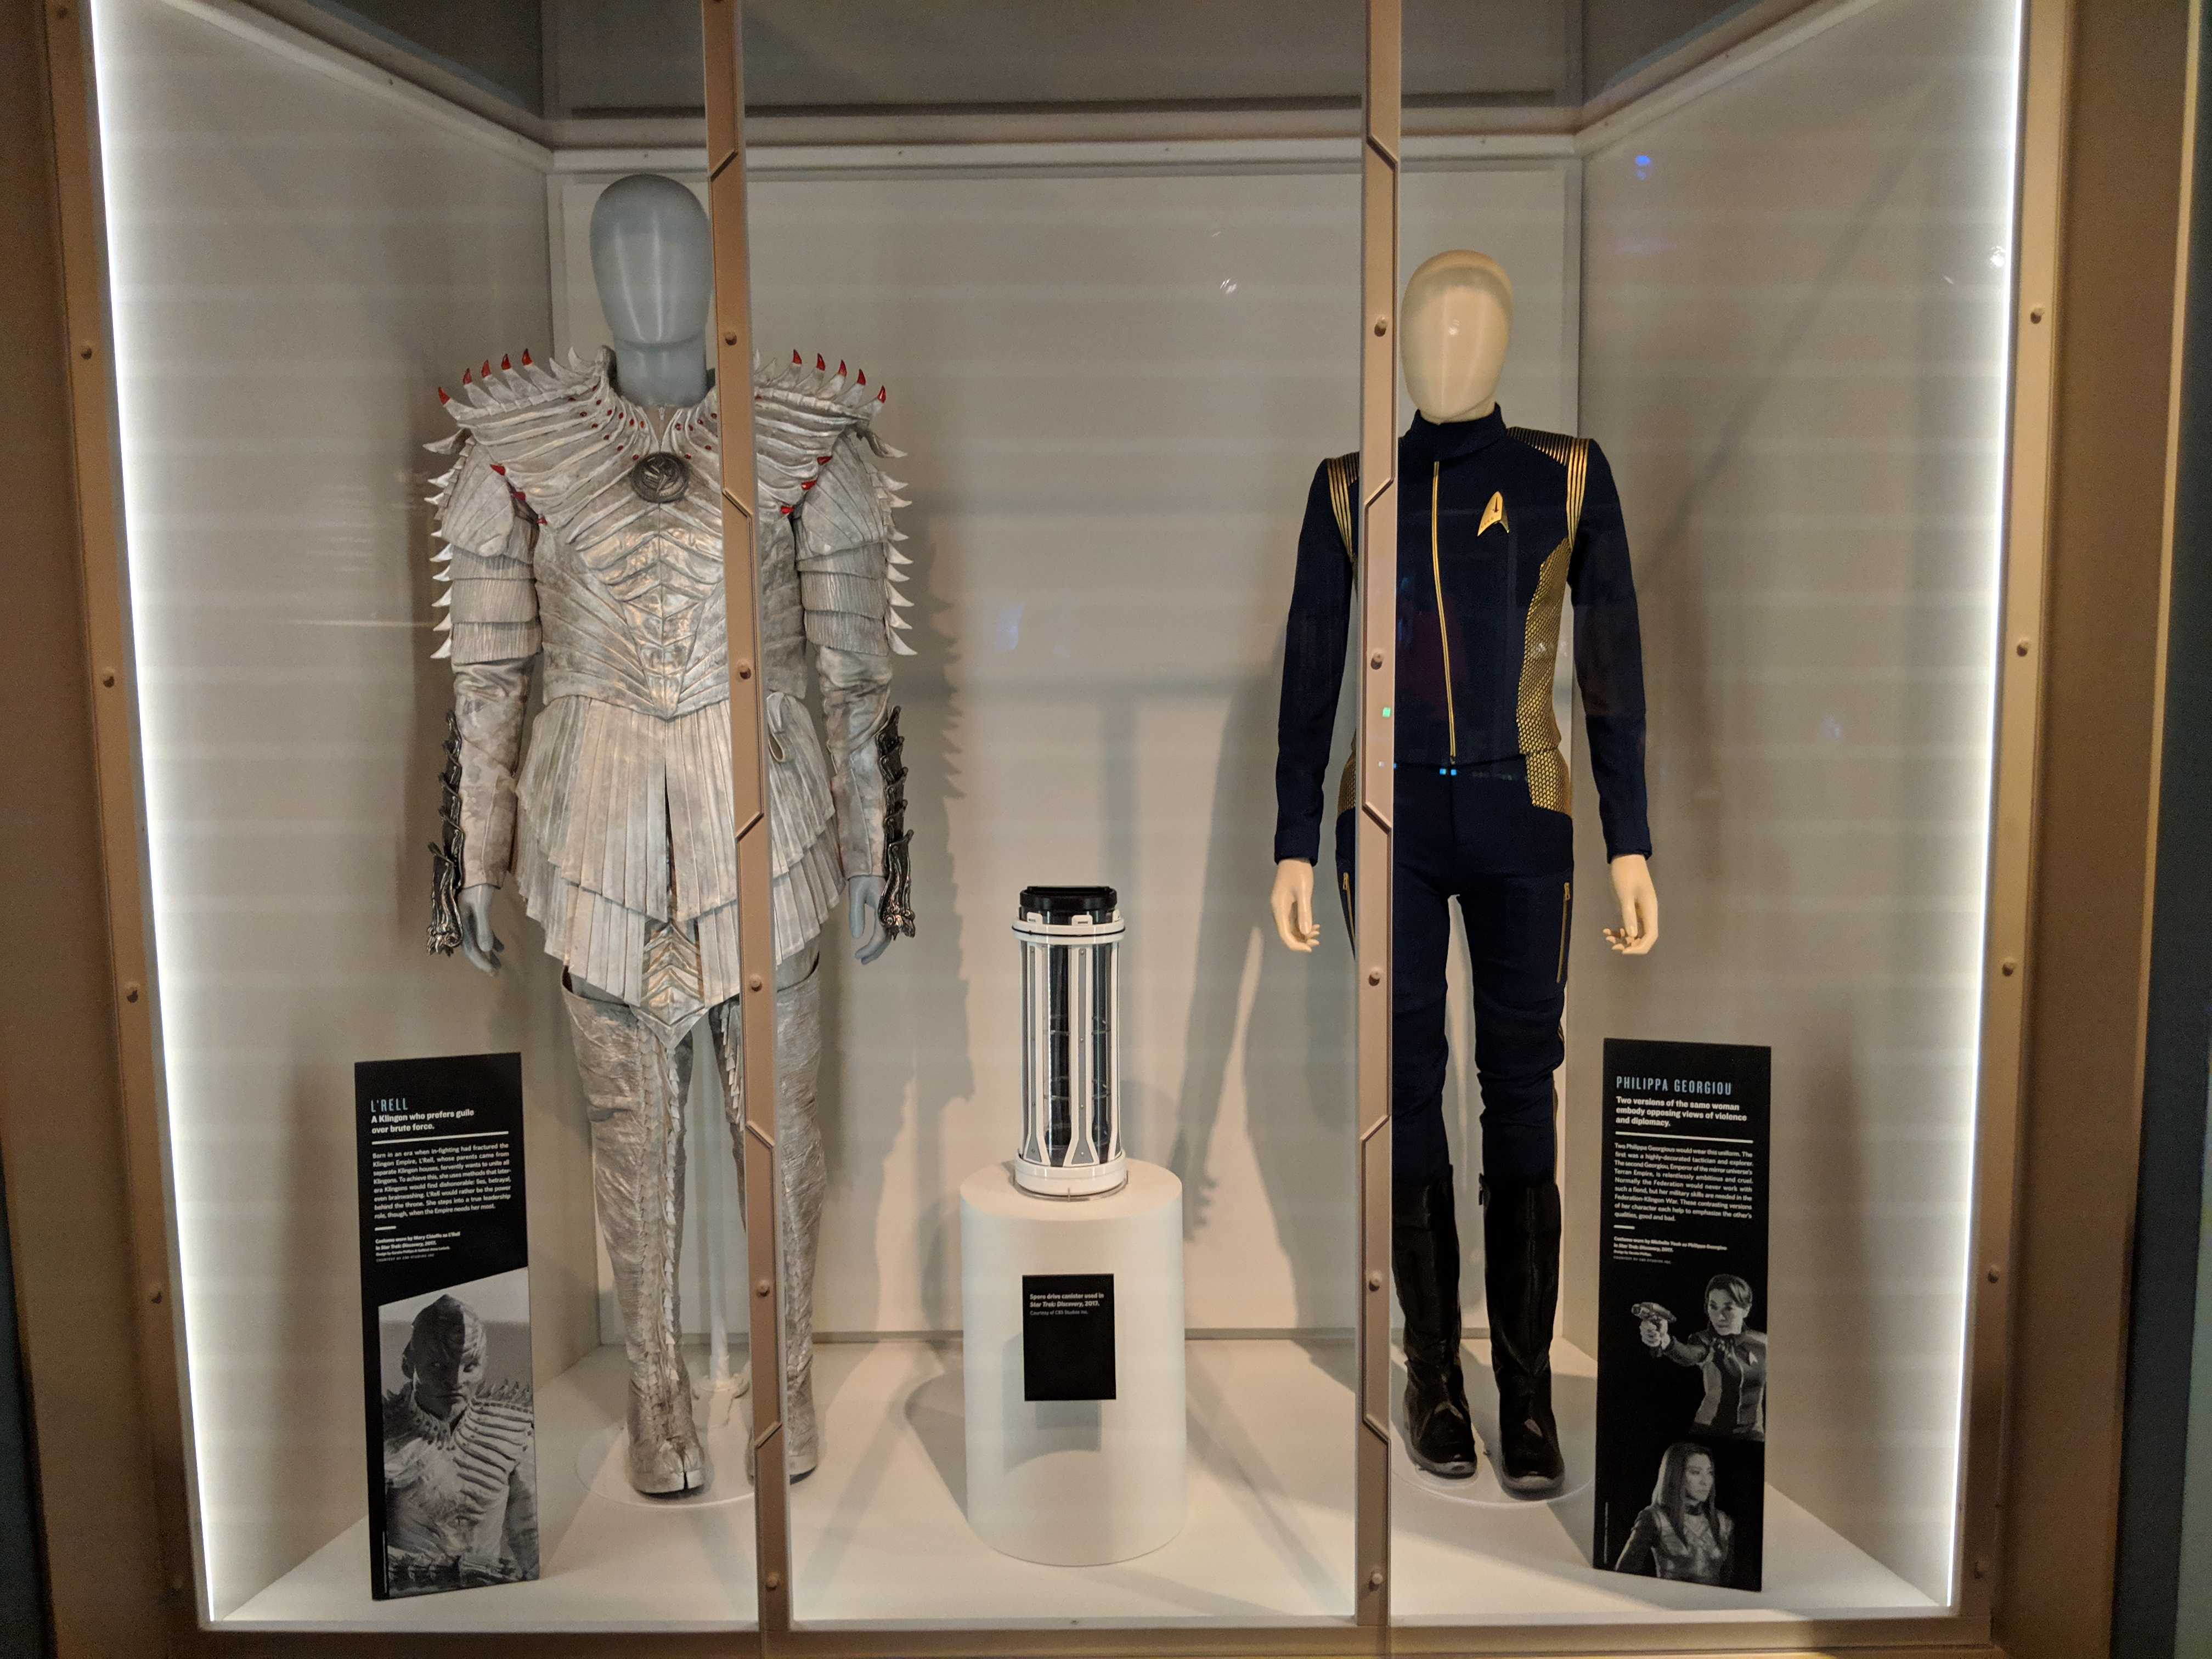 Photo of costumes for L'Rell and Philippa Georgiou